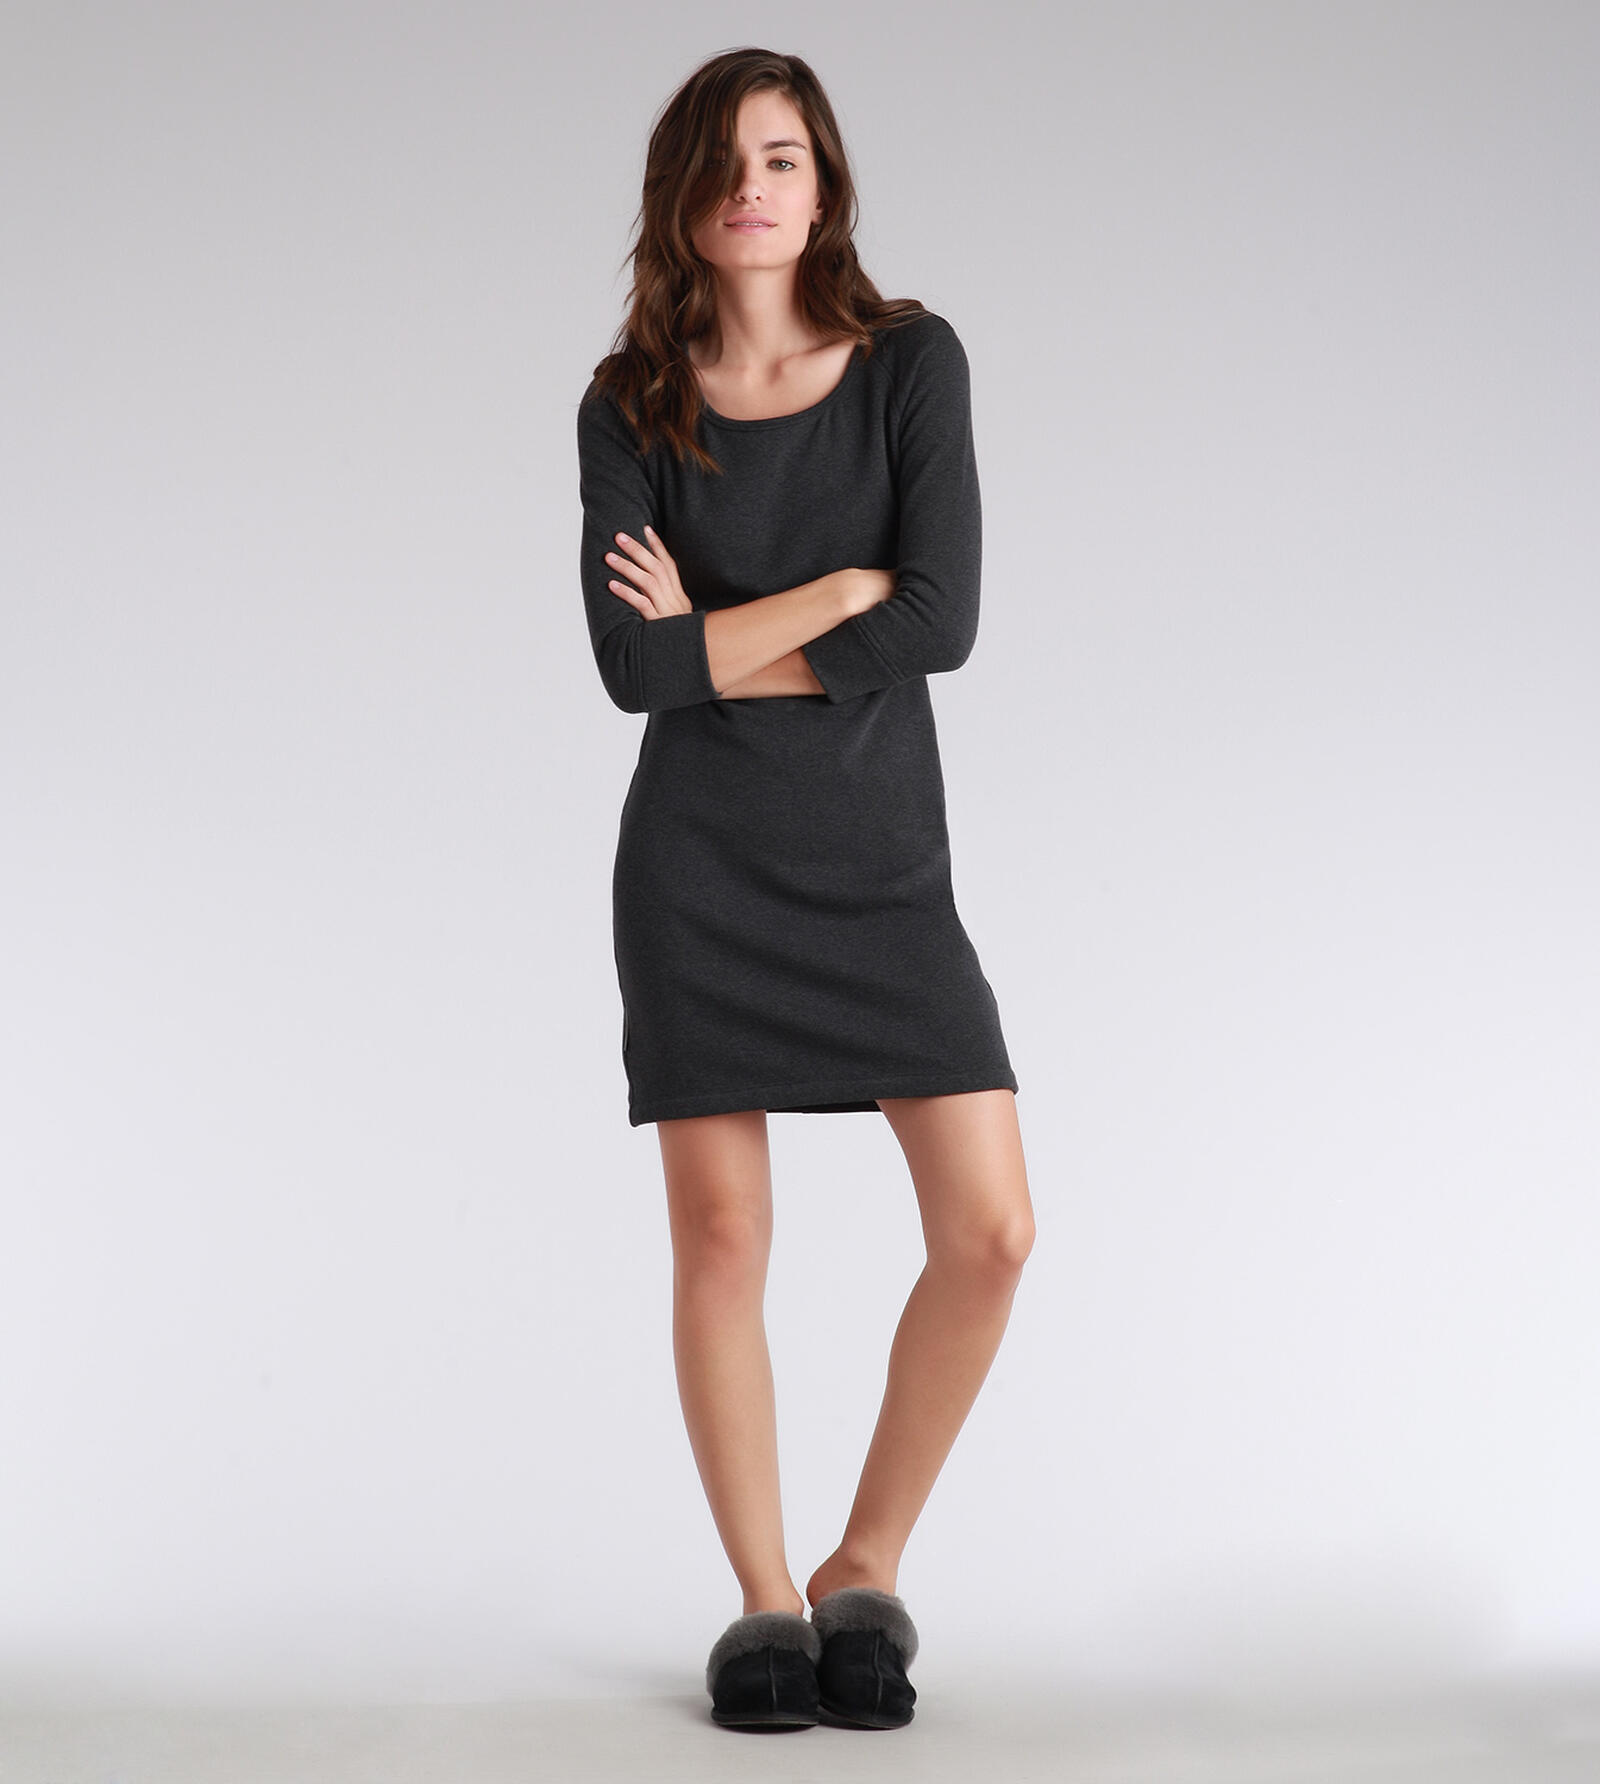 Lirette Dress